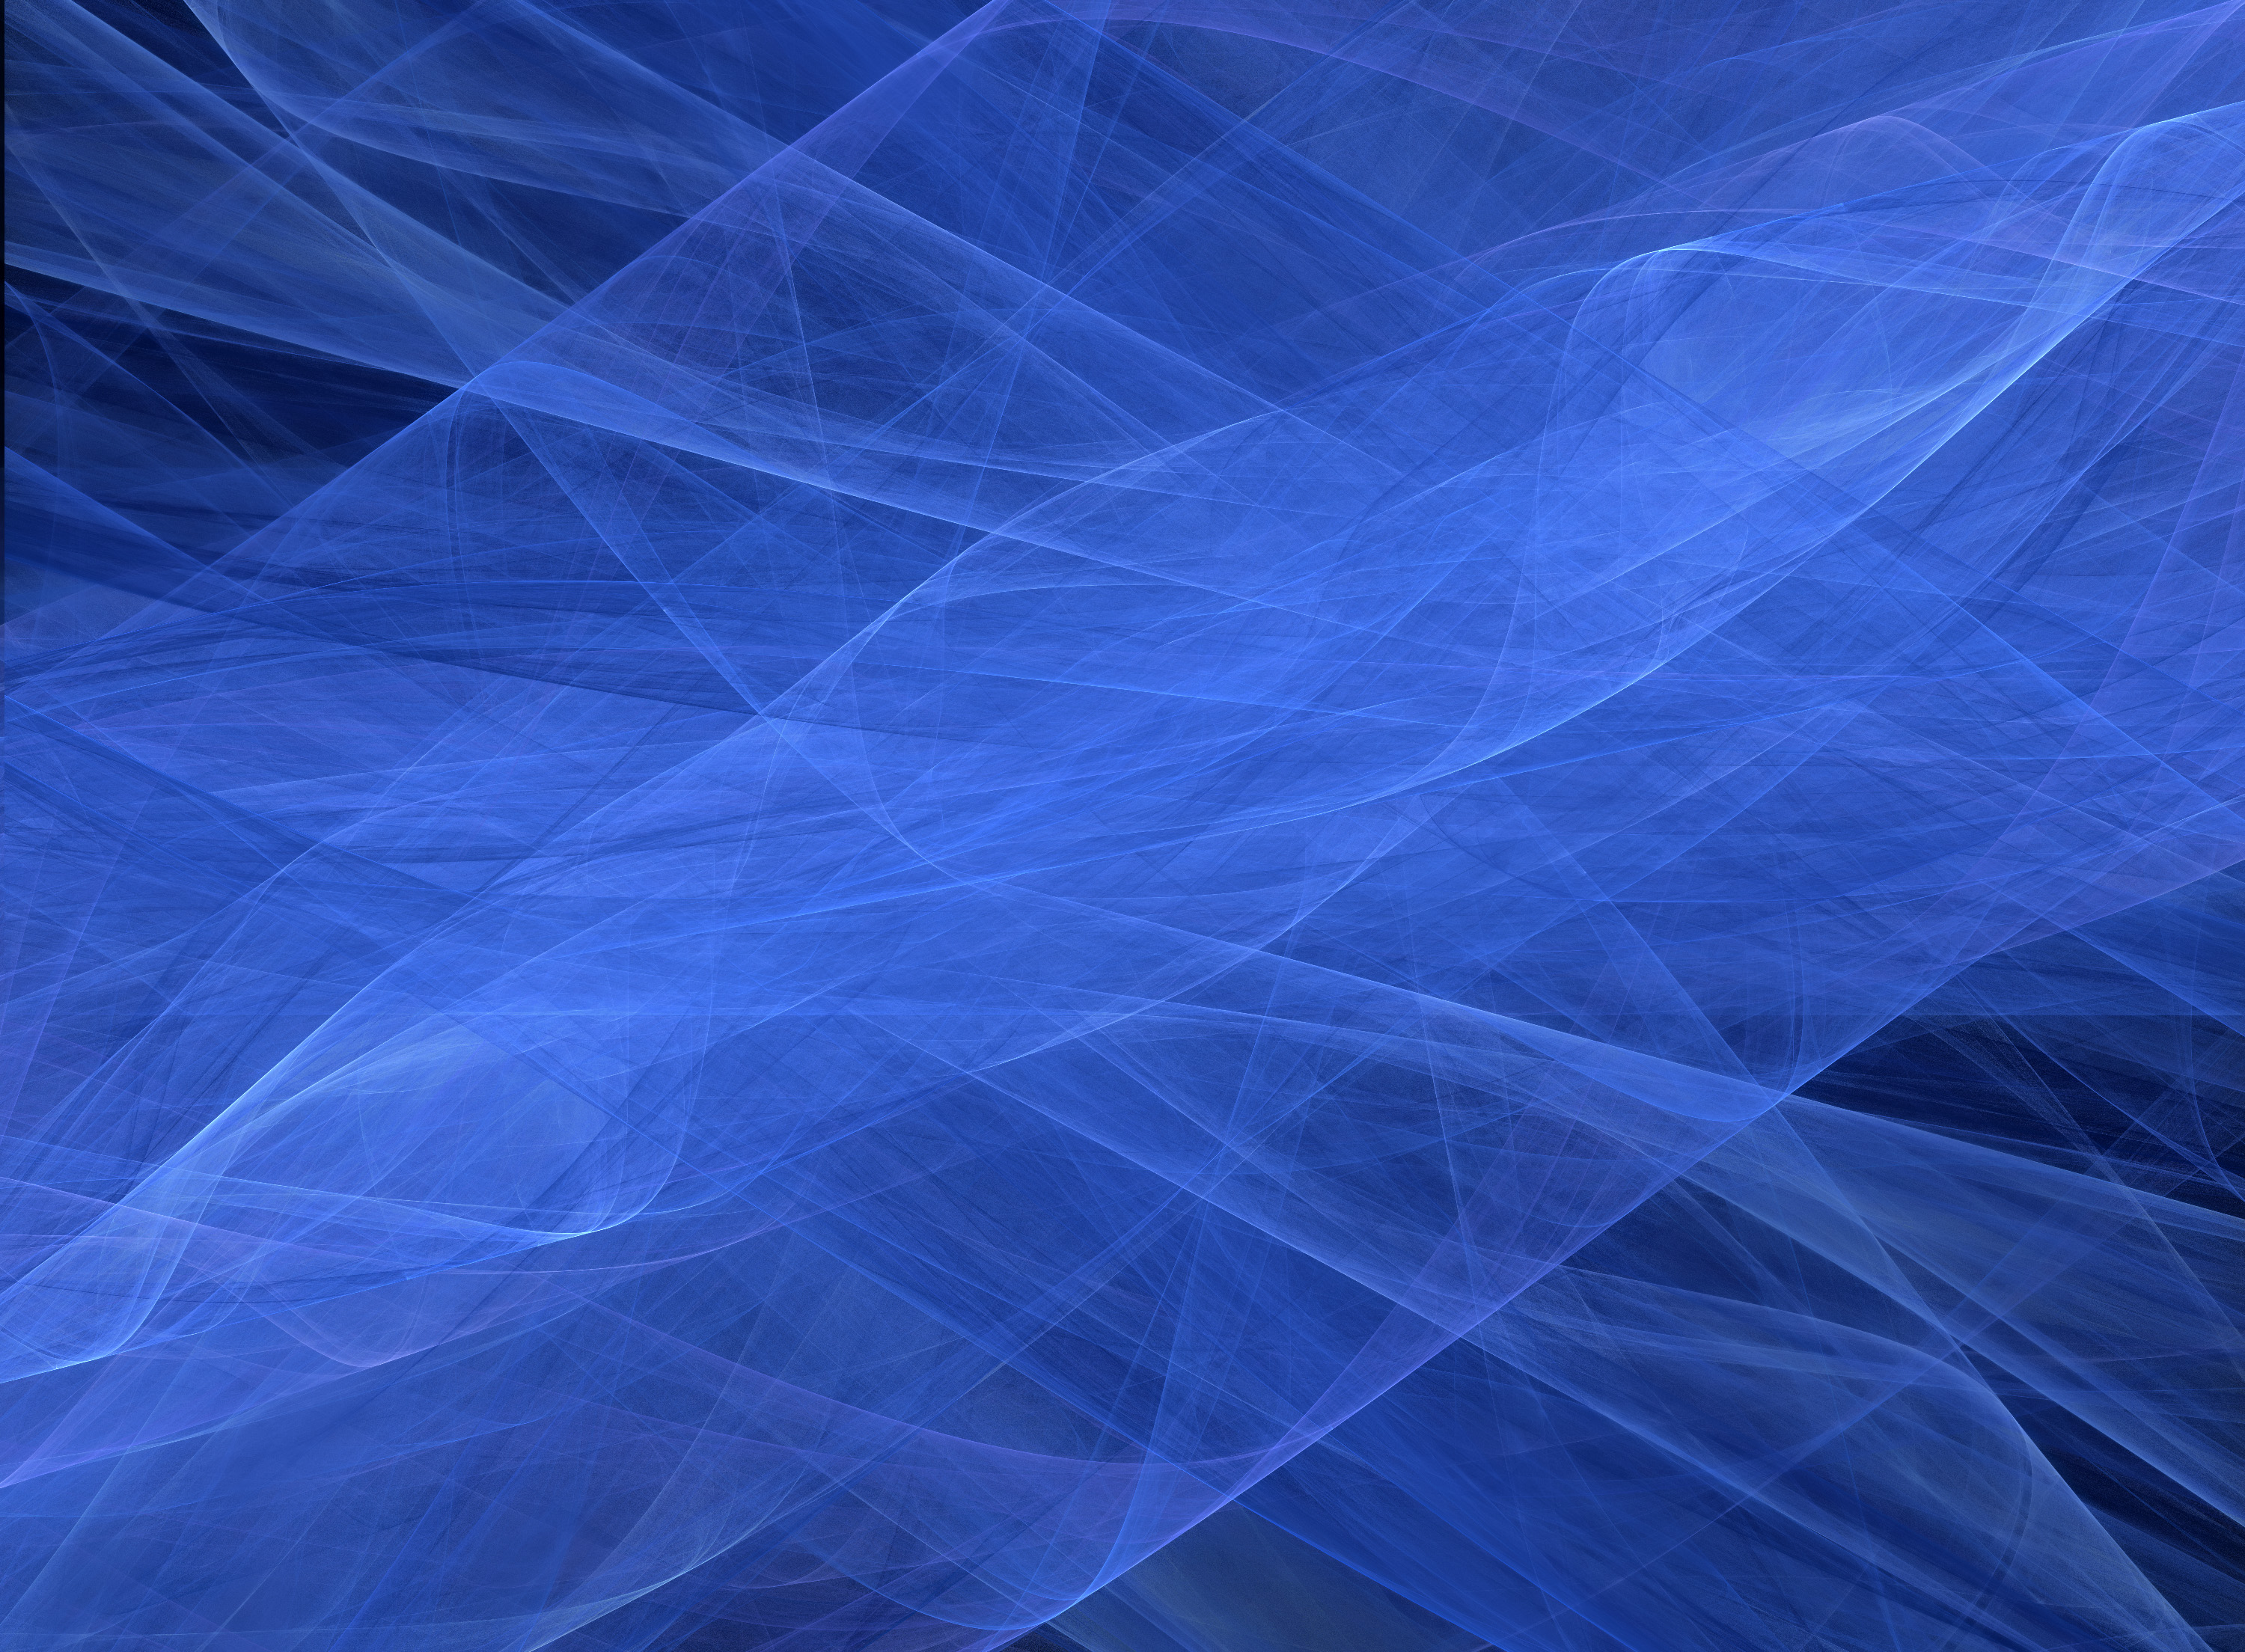 File:Abstract blue background7.jpg